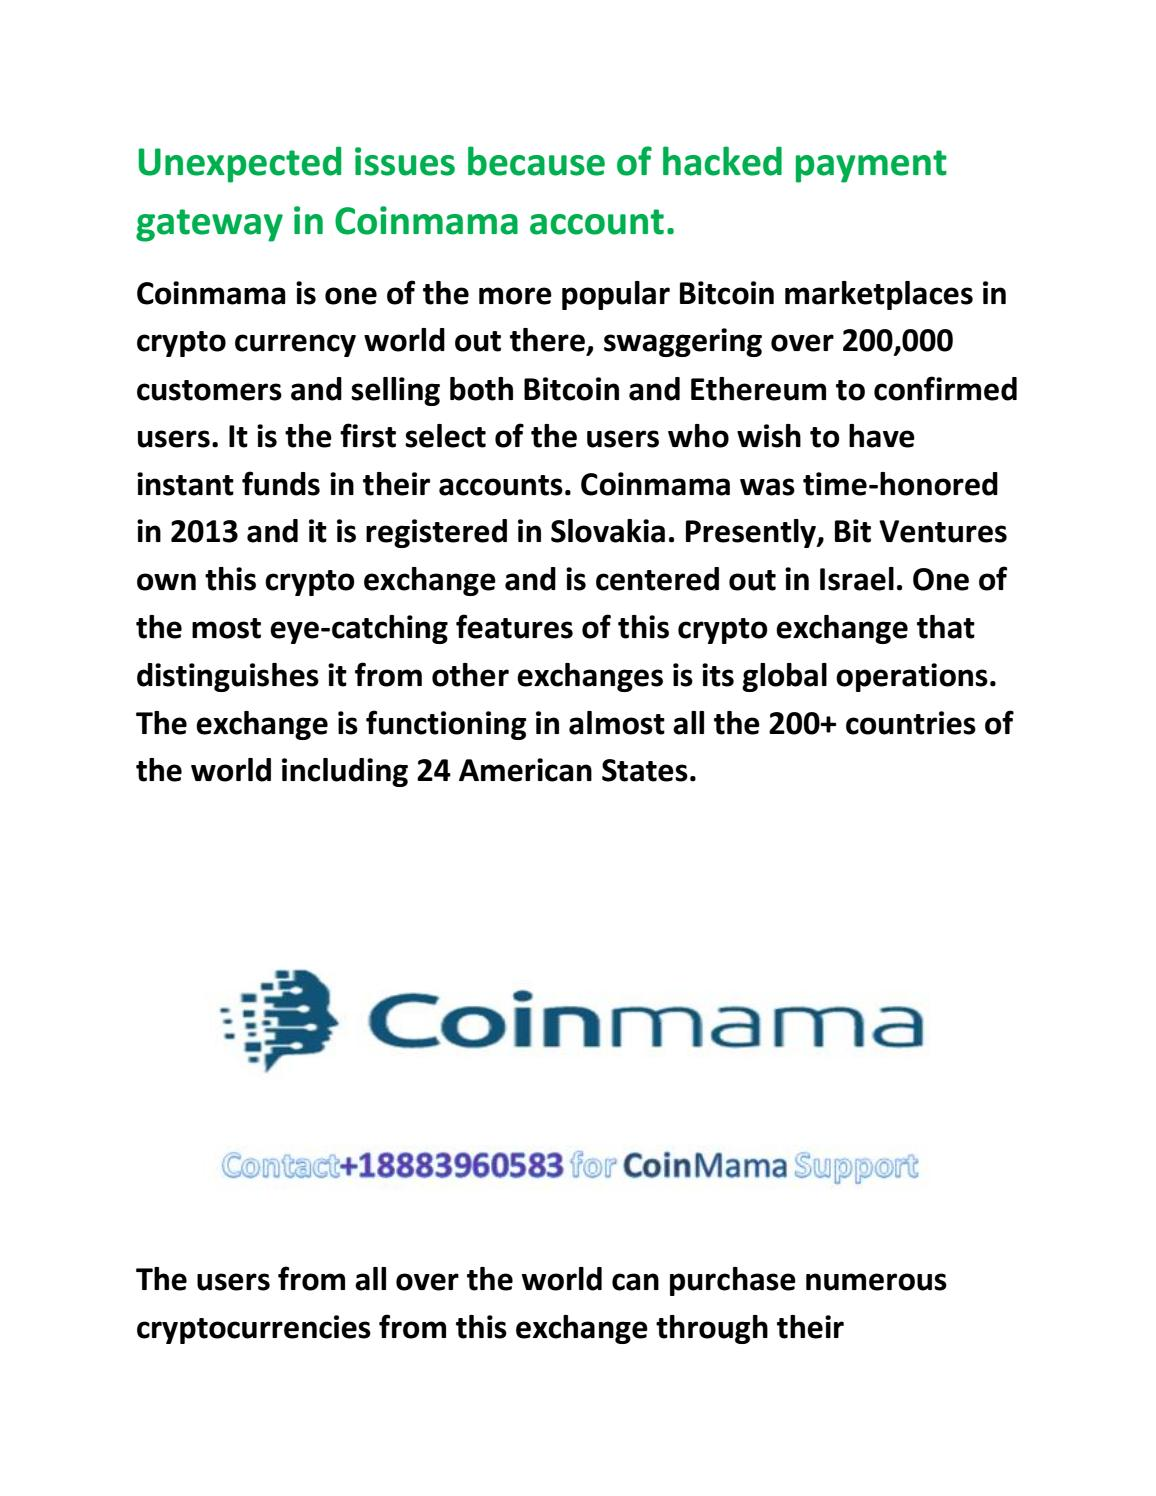 coinmama customer support phone number